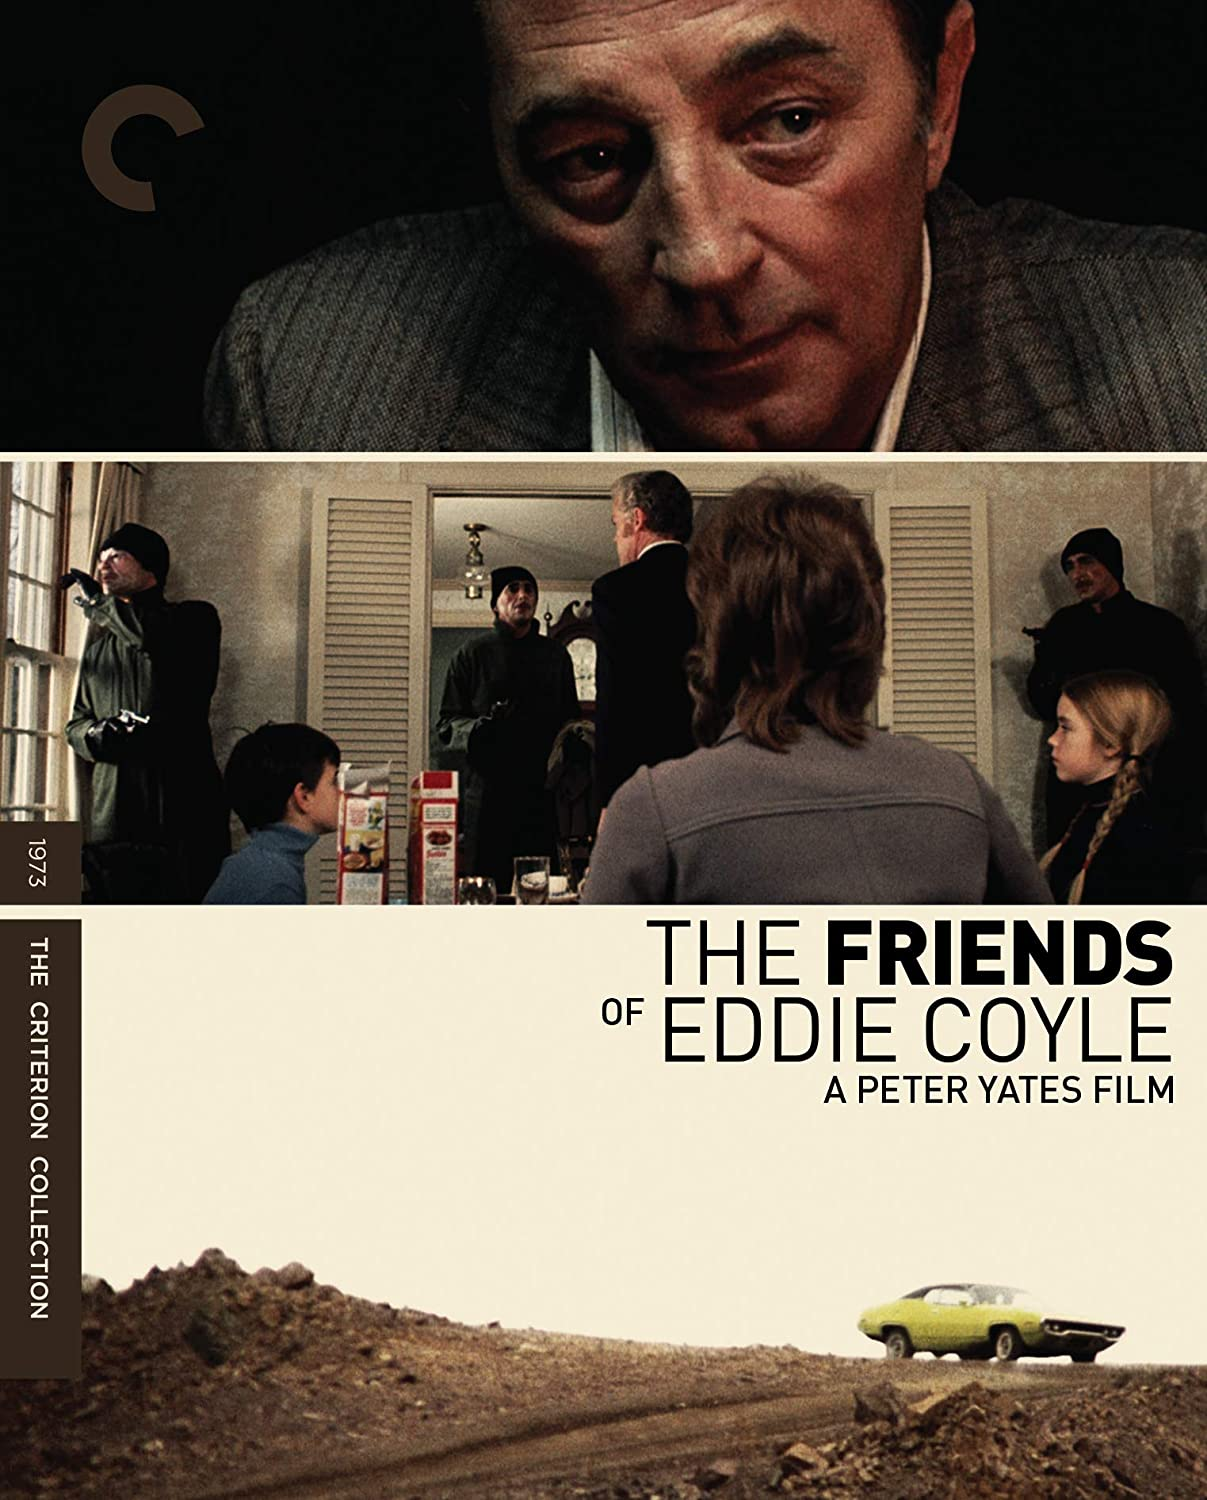 Amazon com: The Friends of Eddie Coyle [Blu-ray]: Peter